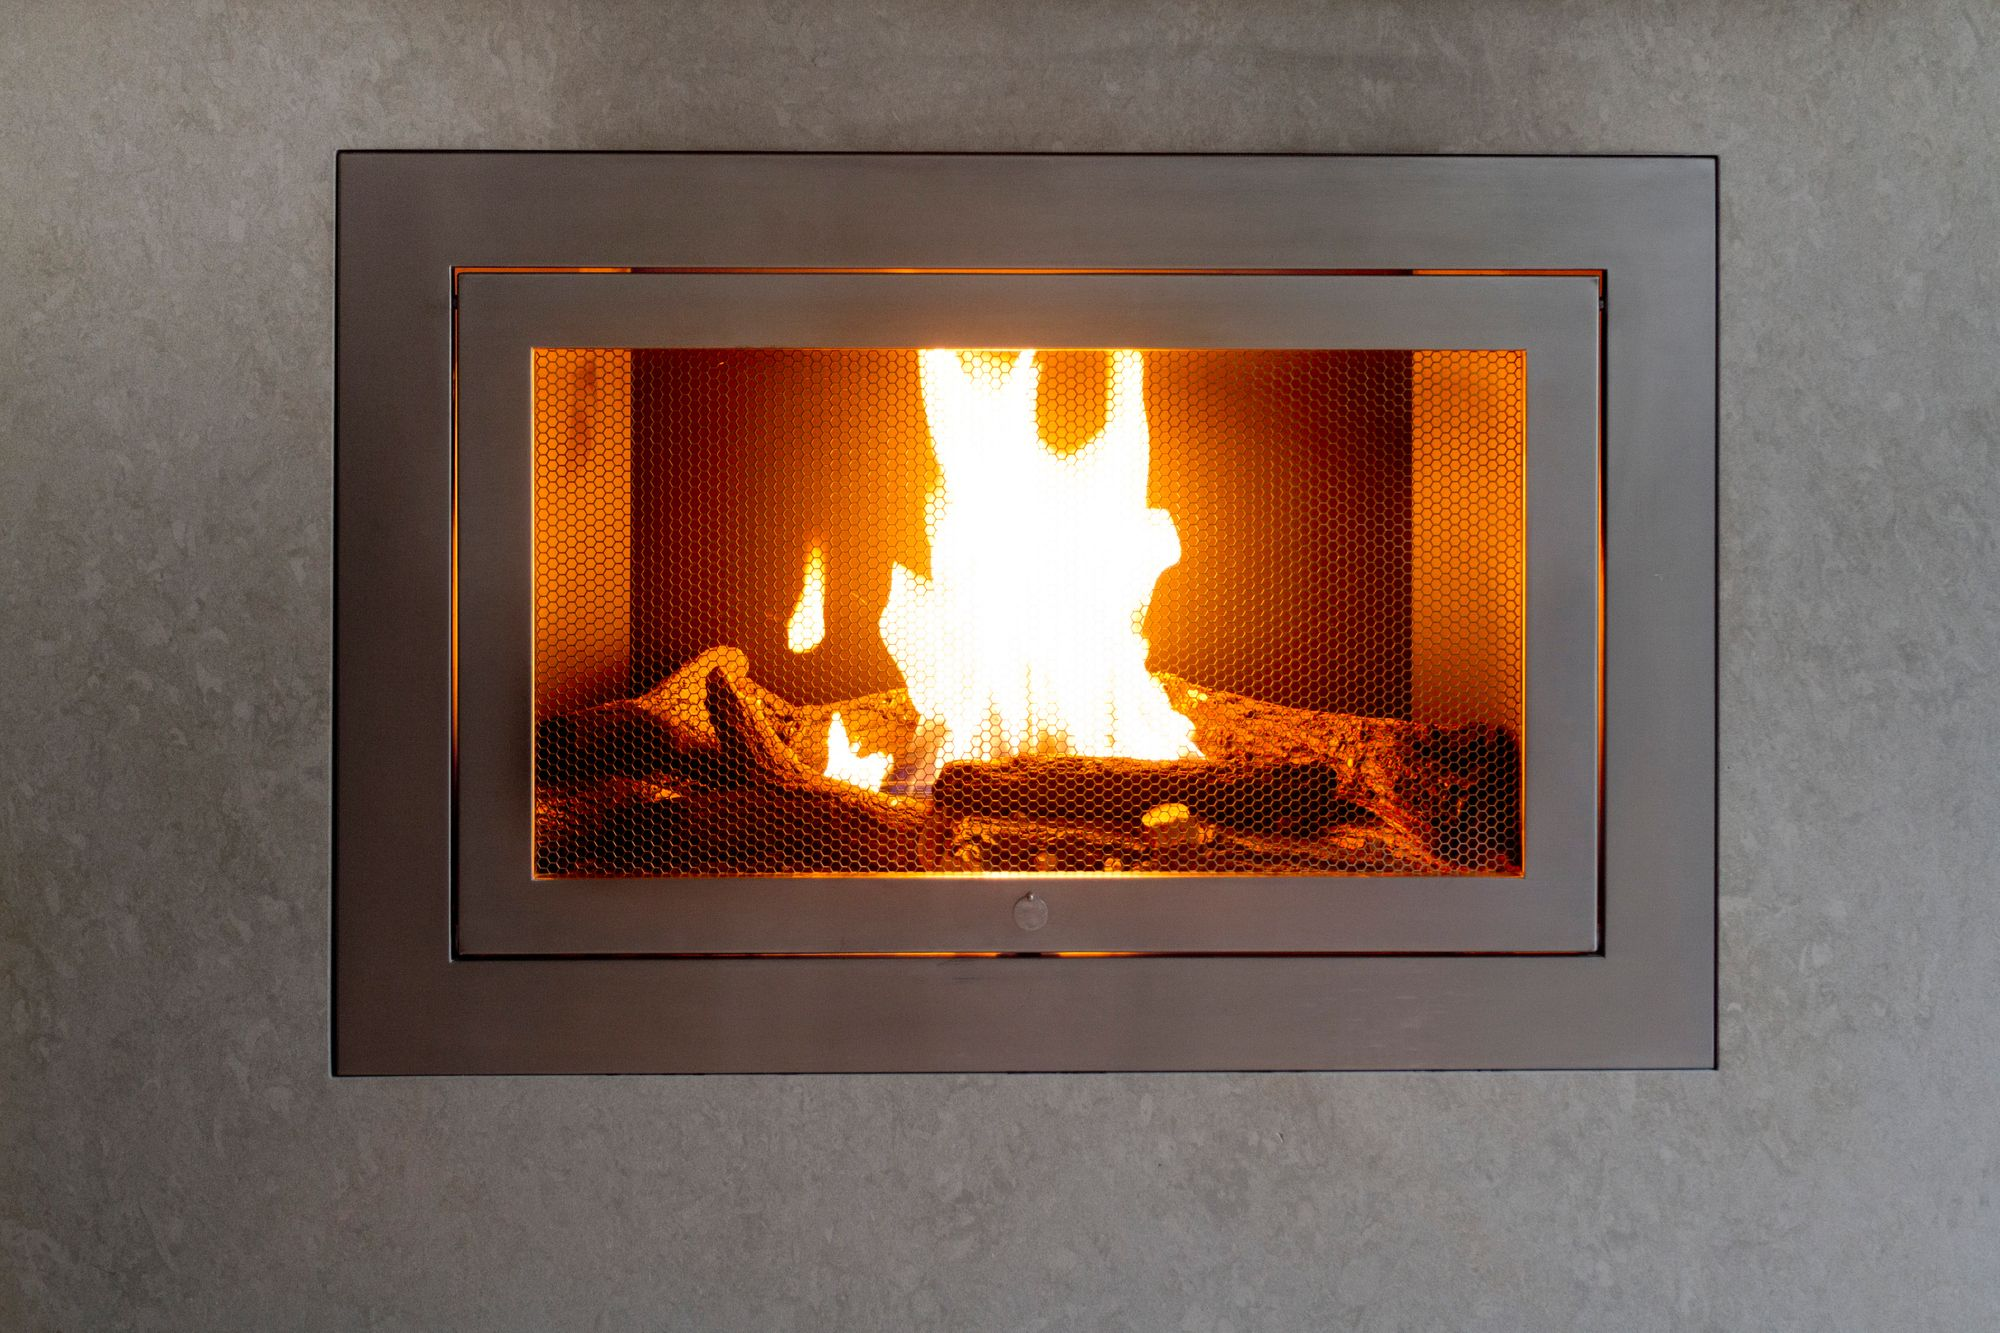 Hearthcabinet Ventless Fireplaces Come Fully Assembled And Do